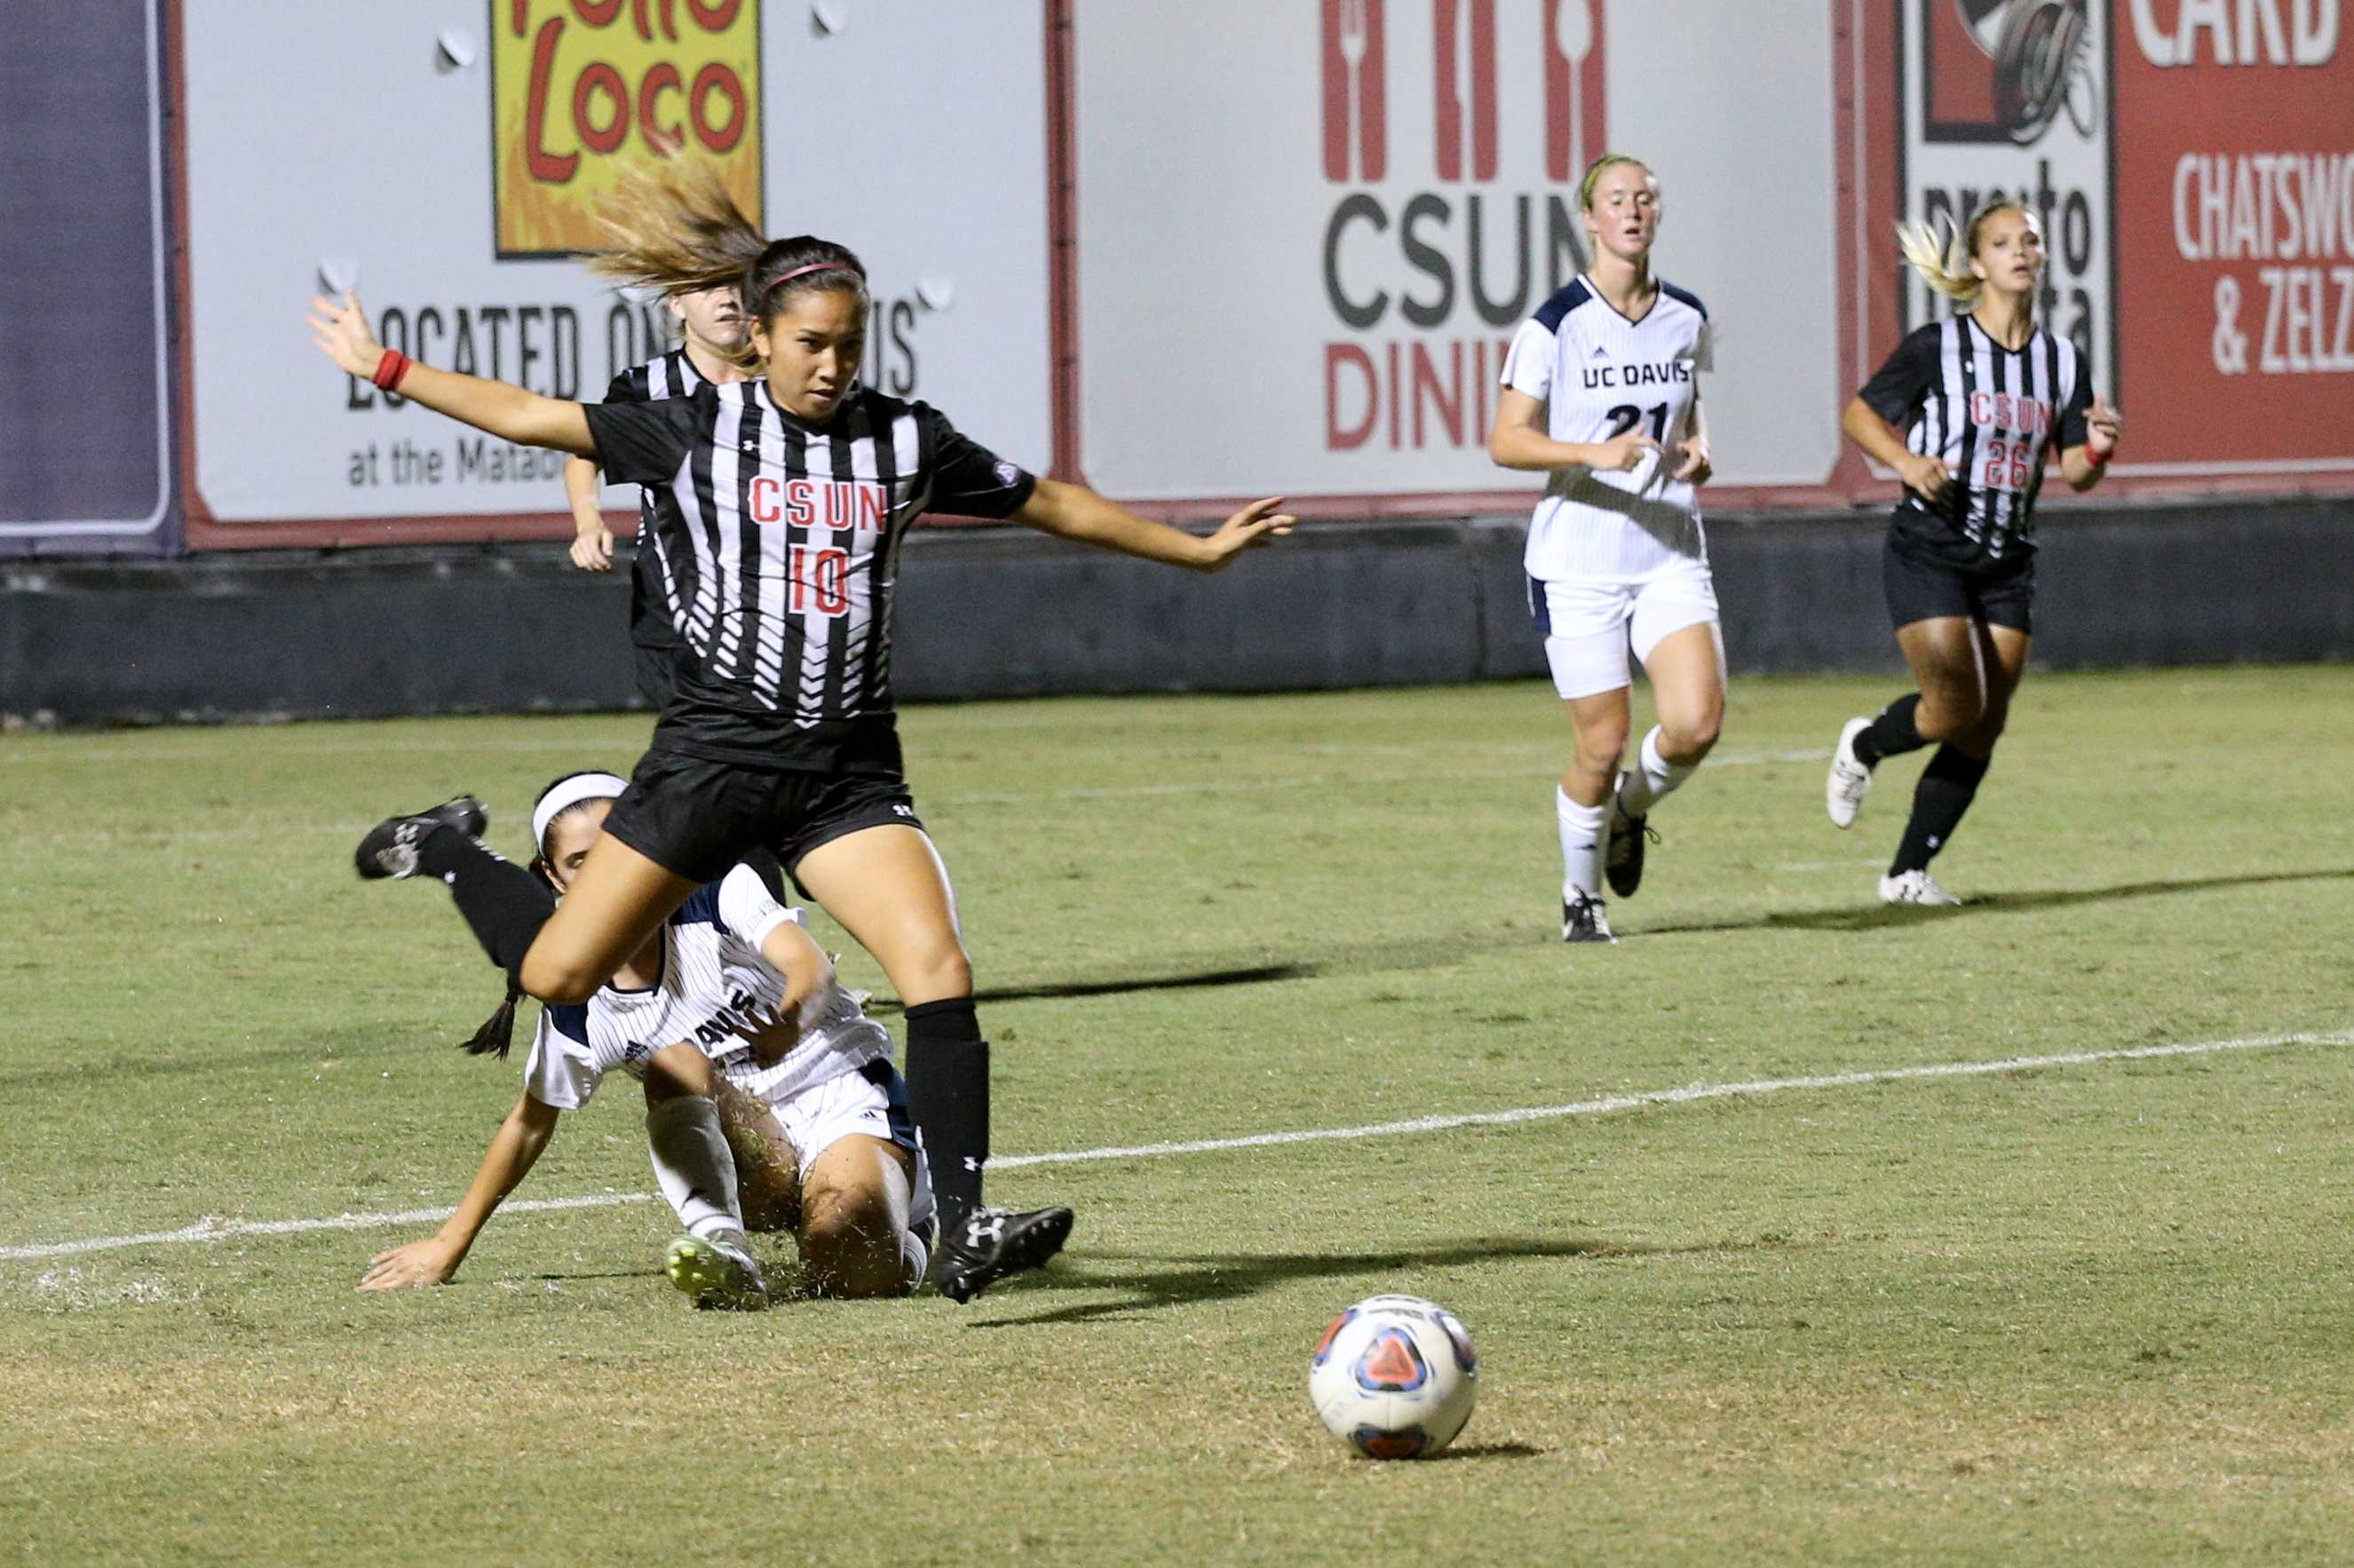 CSUN player prepares to kick ball